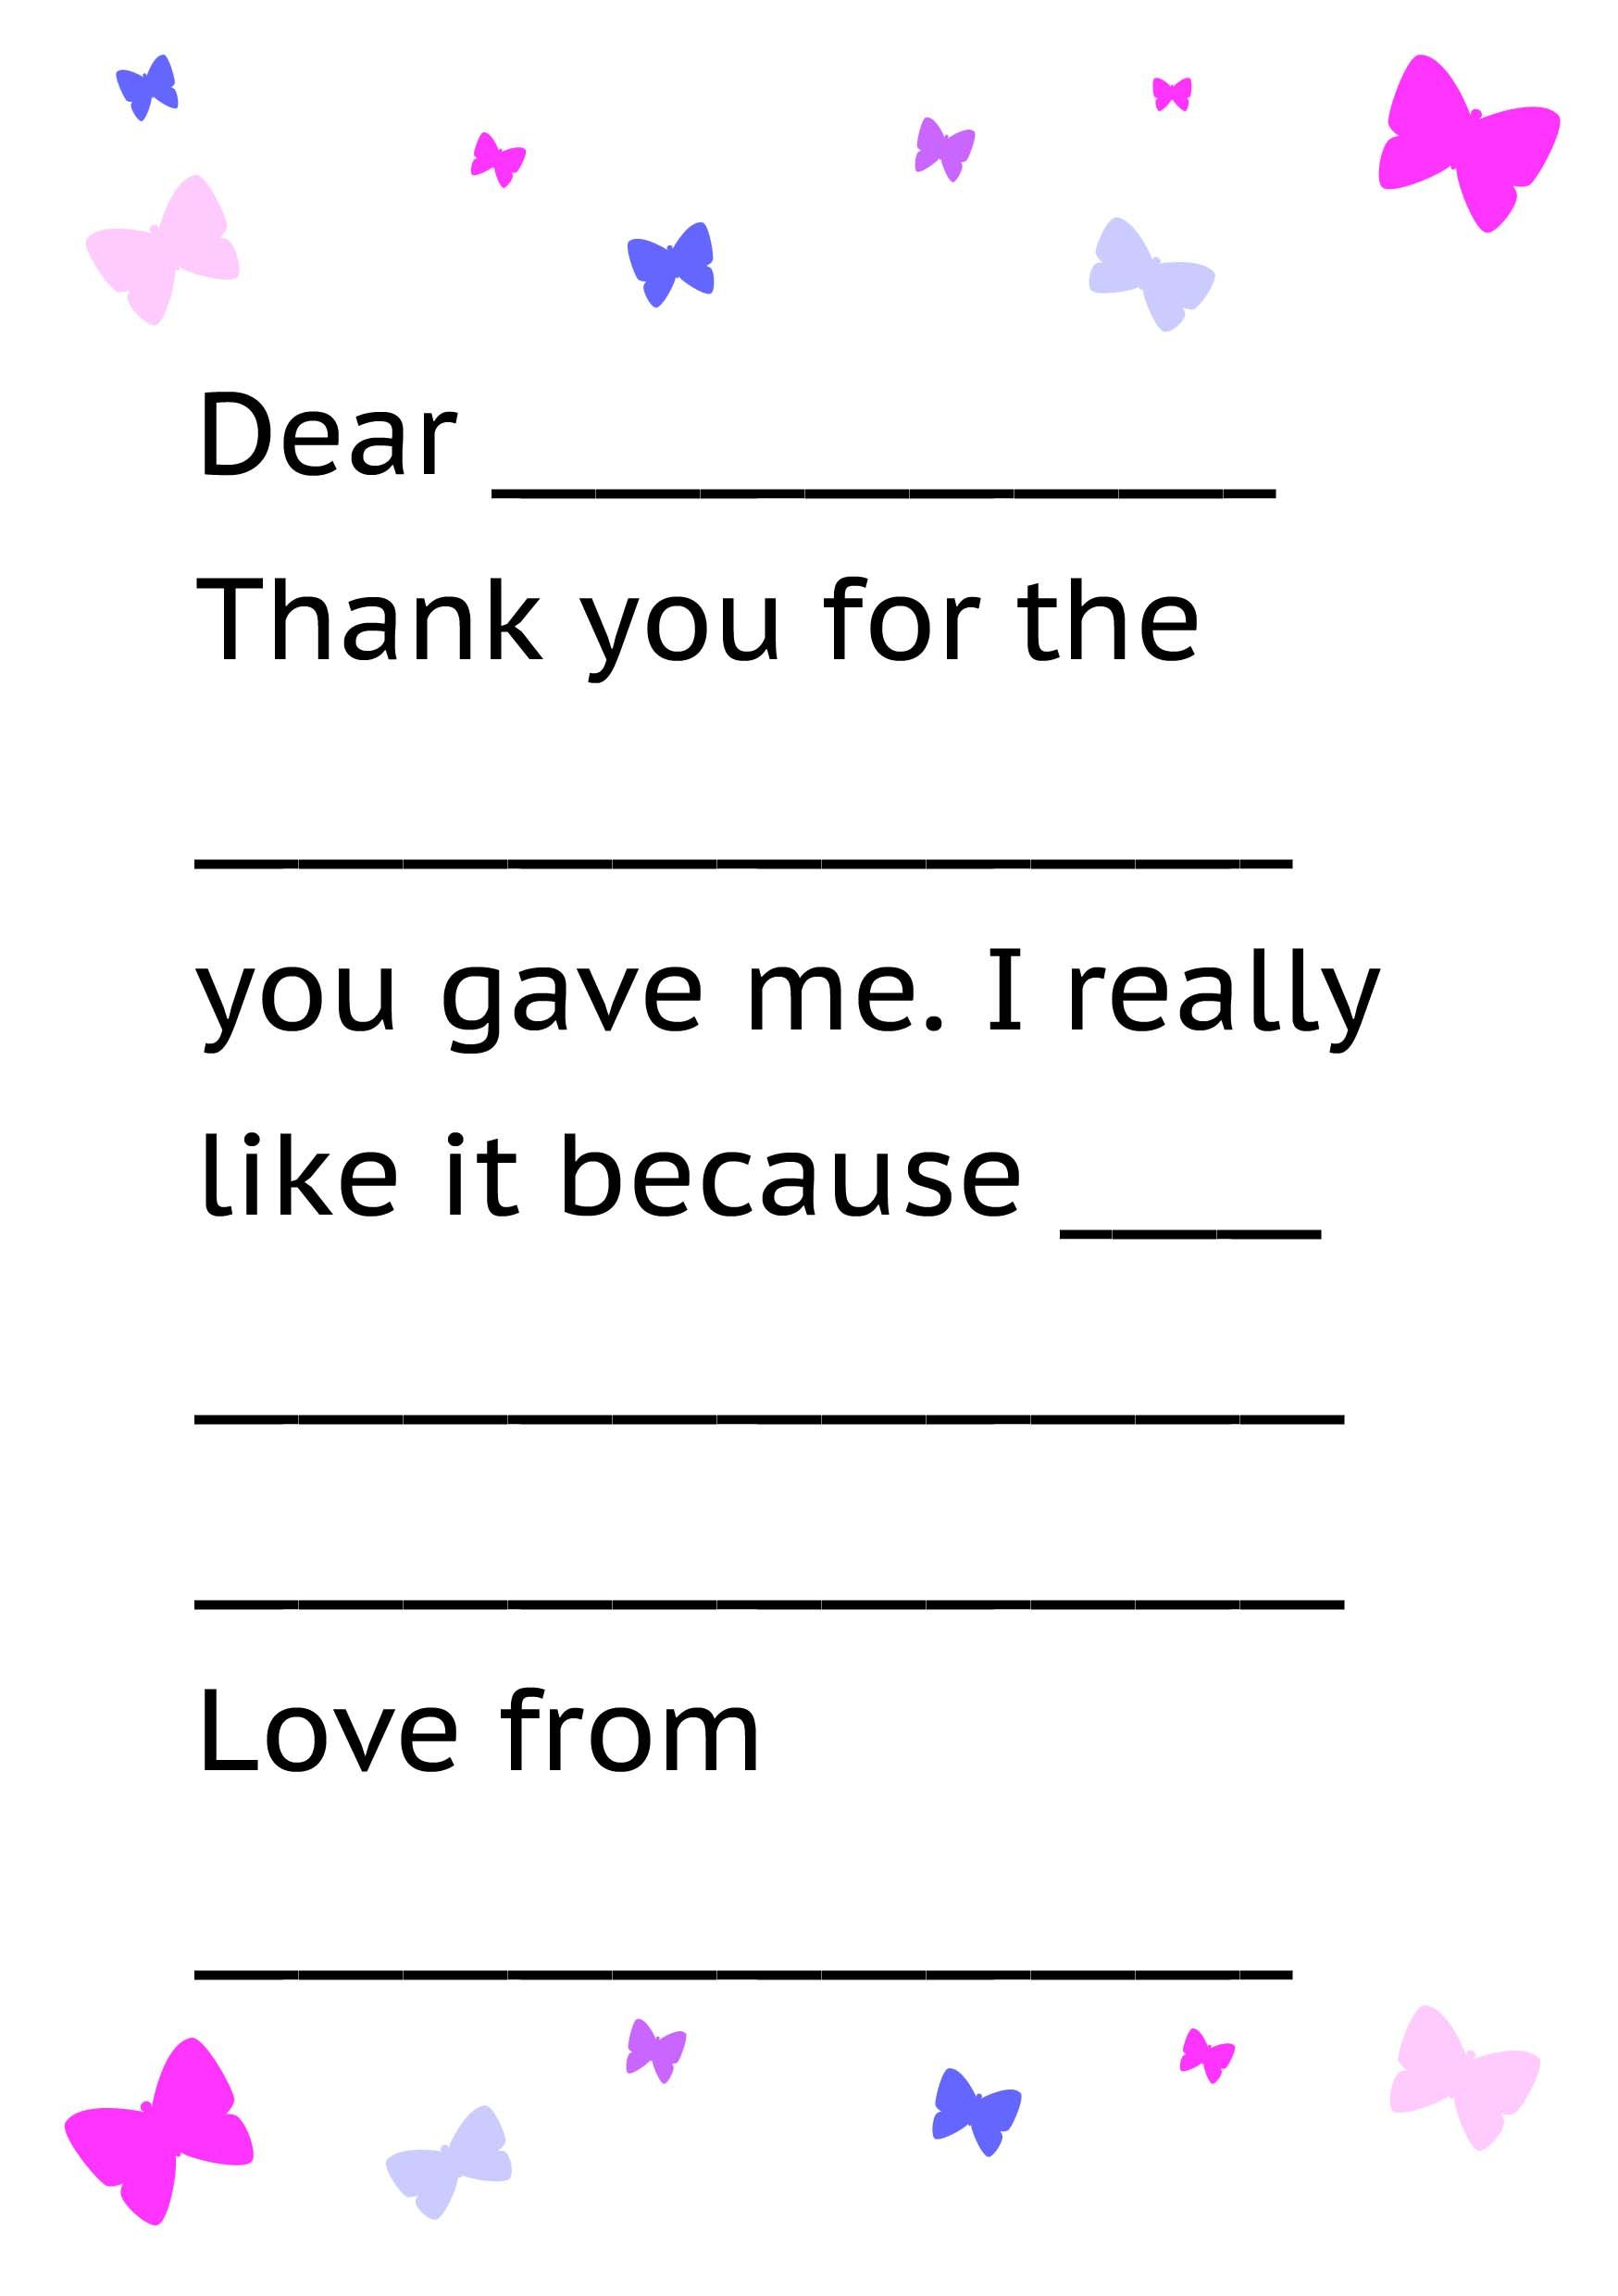 Formal thank you letter solarfm goodly donation thank you letter letter format writing spiritdancerdesigns Choice Image